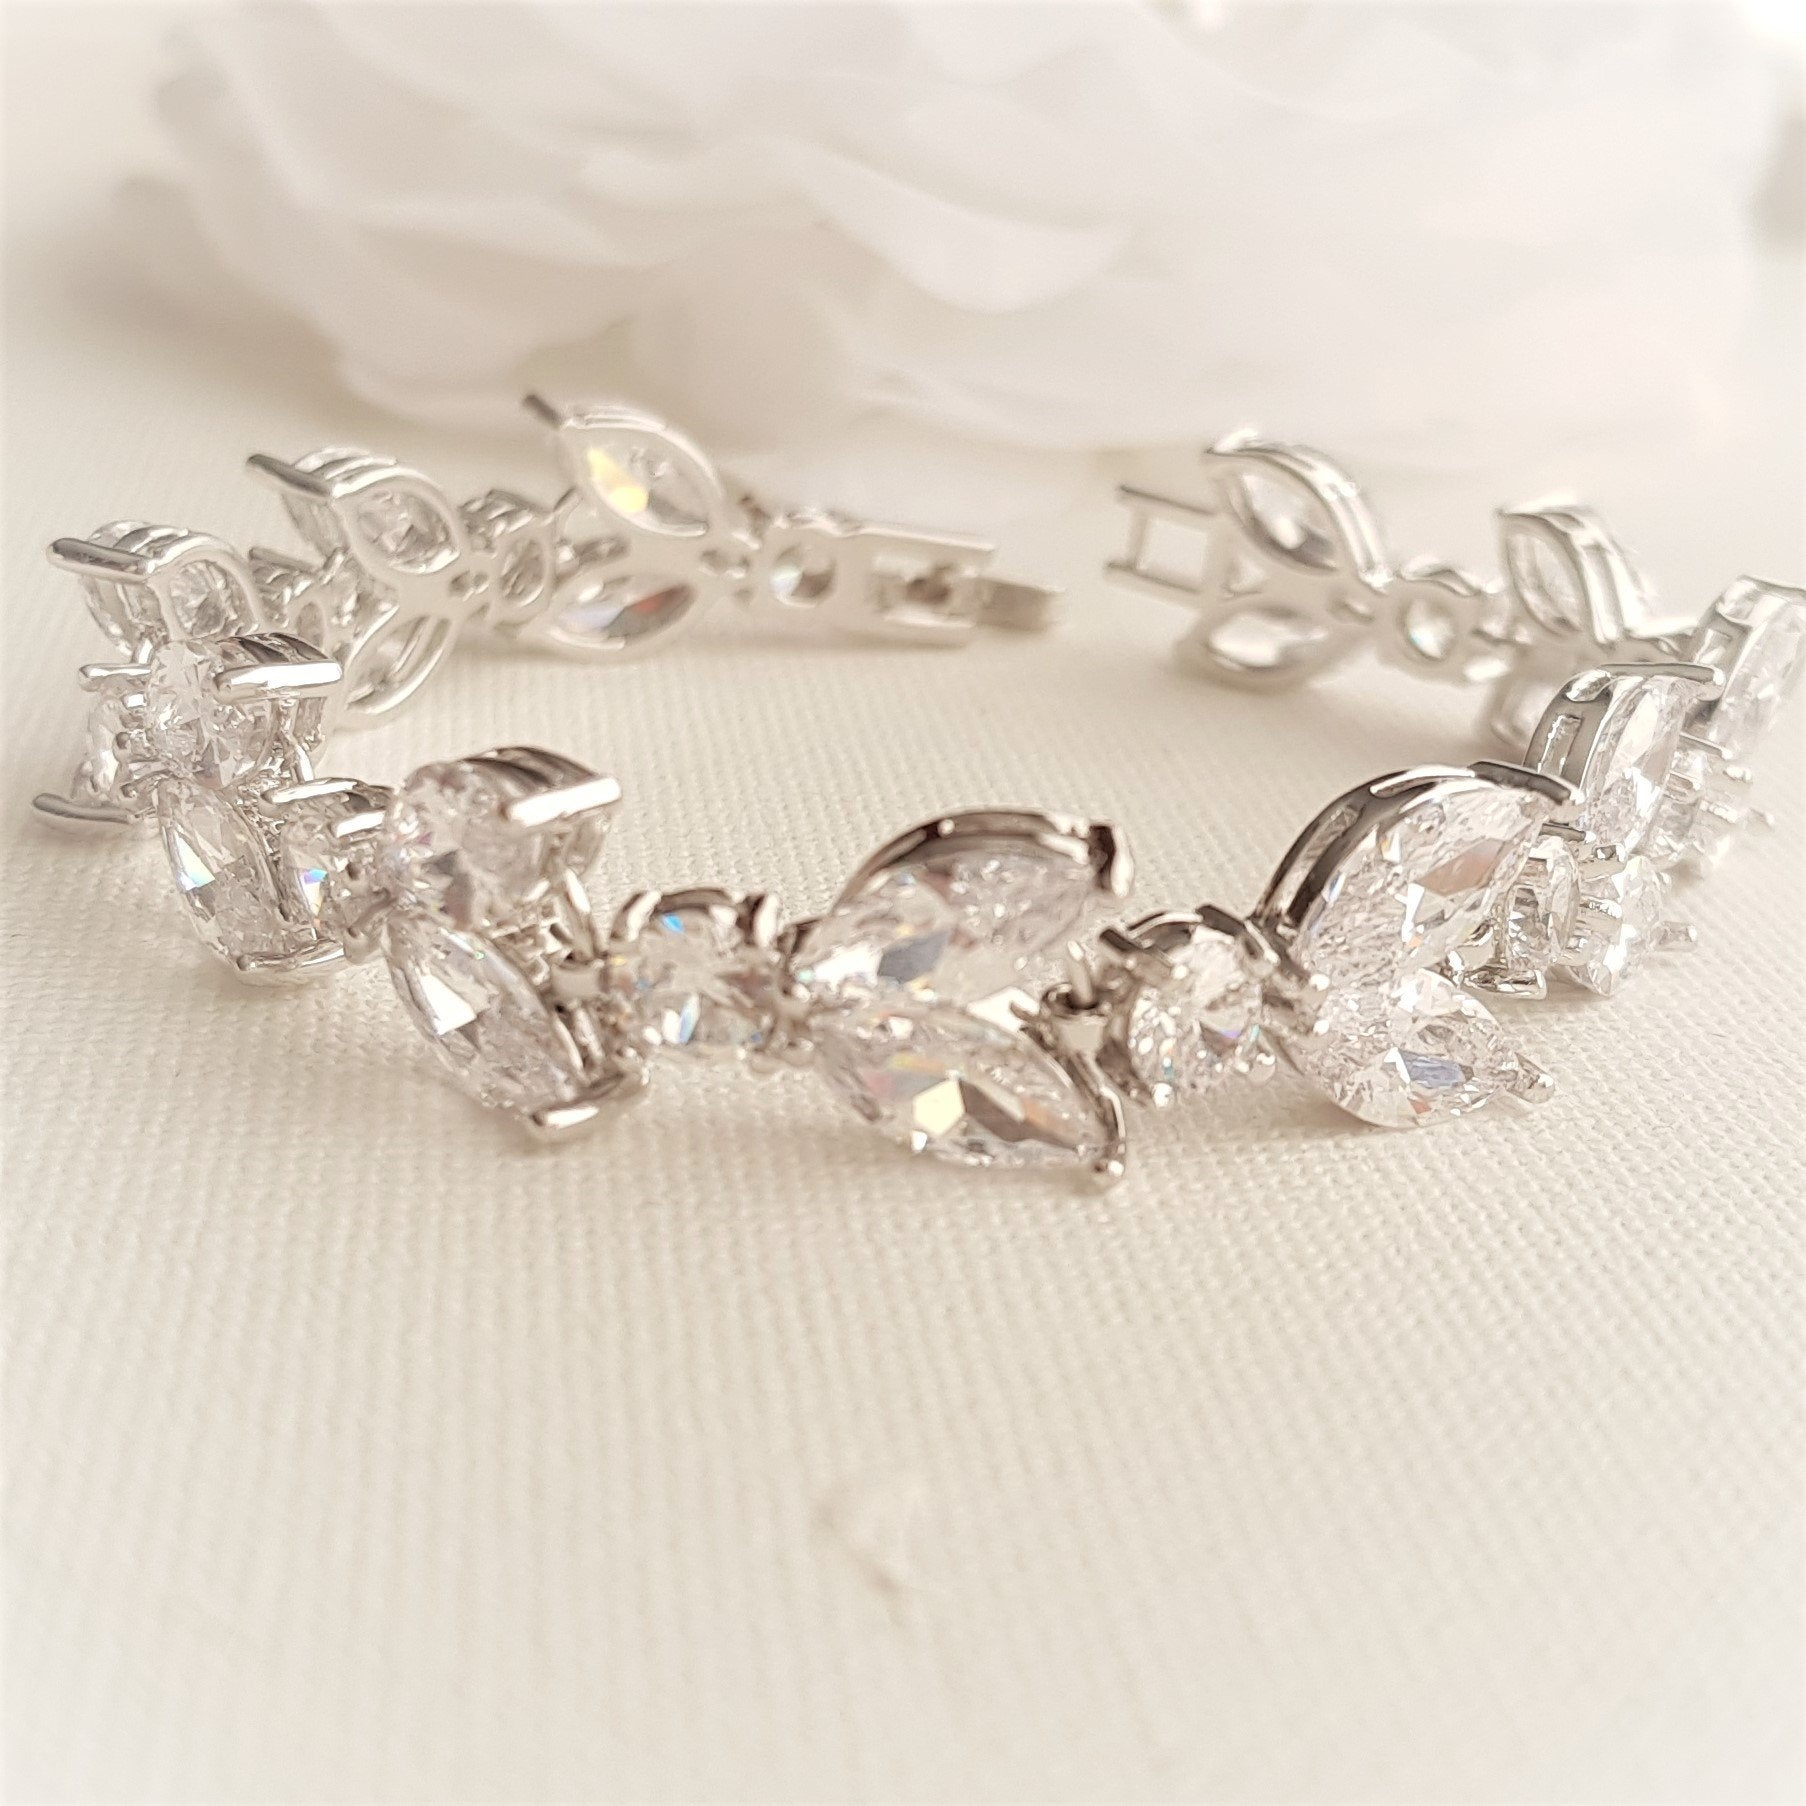 Cubic Zirconia Wedding Day Bracelet-Mia - PoetryDesigns